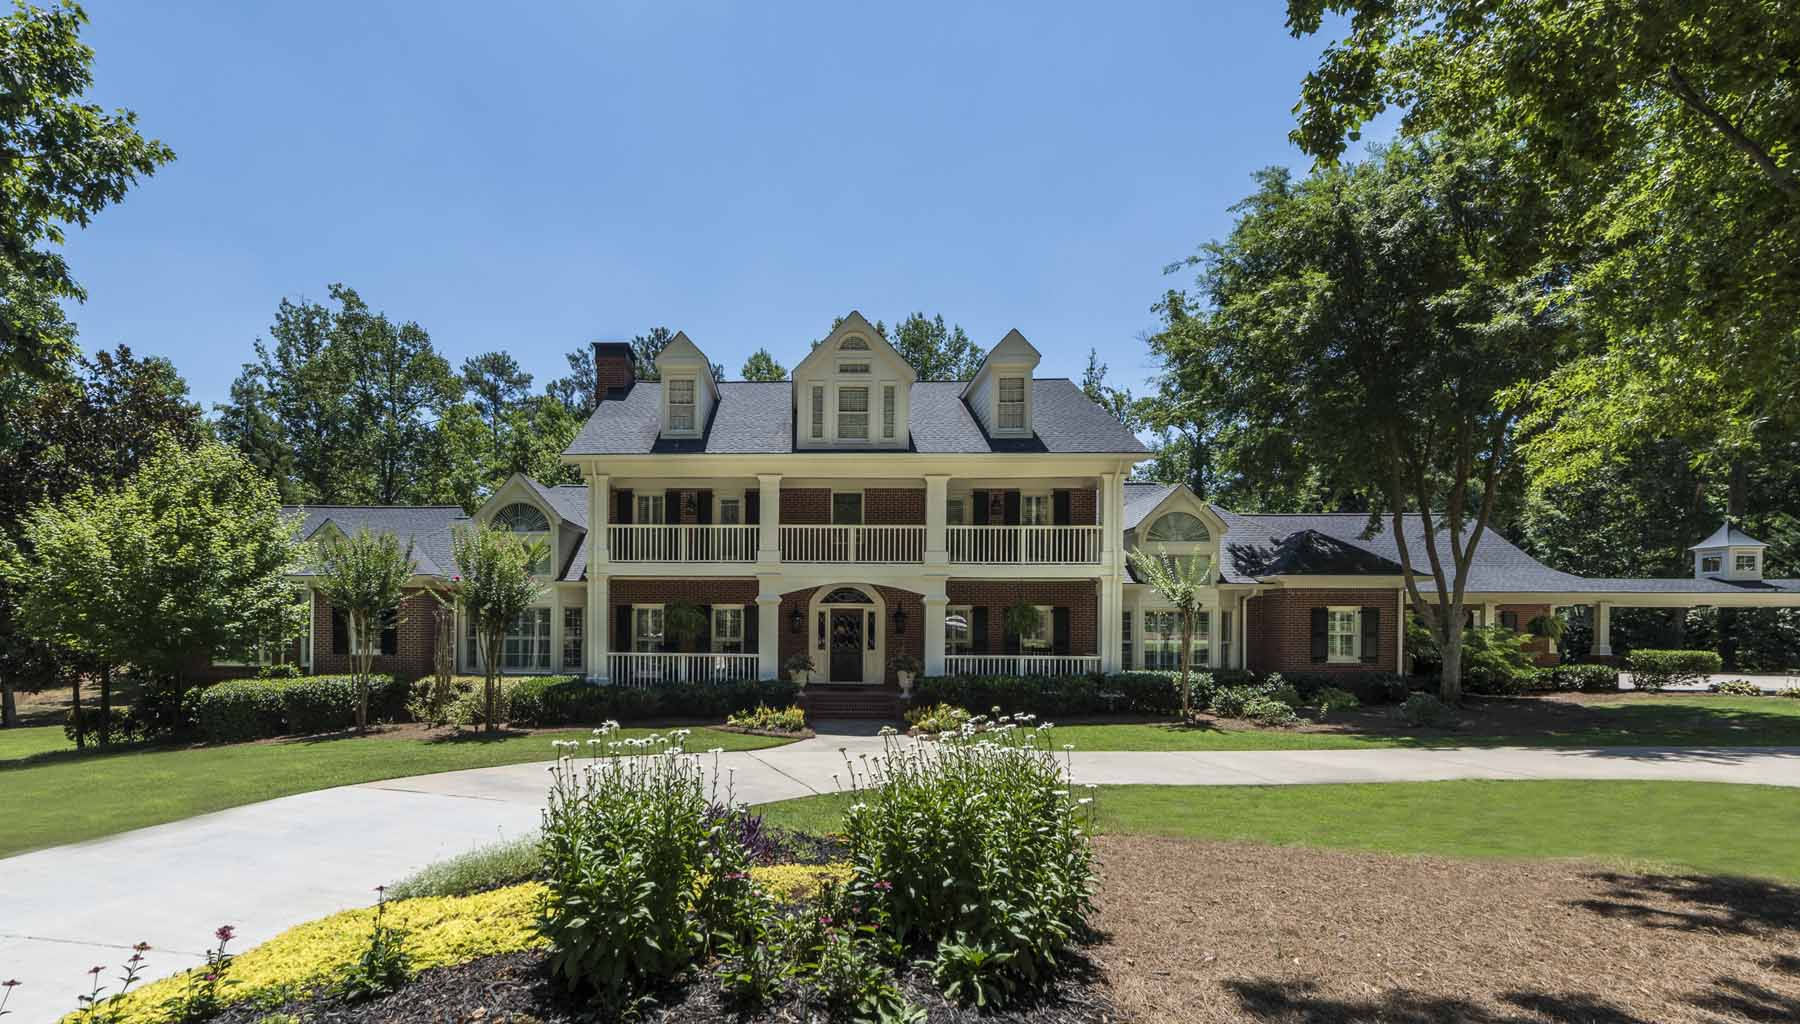 Villa per Vendita alle ore Extraordinary Property in Johns Creek 345 Bardolier Johns Creek, Georgia 30022 Stati Uniti